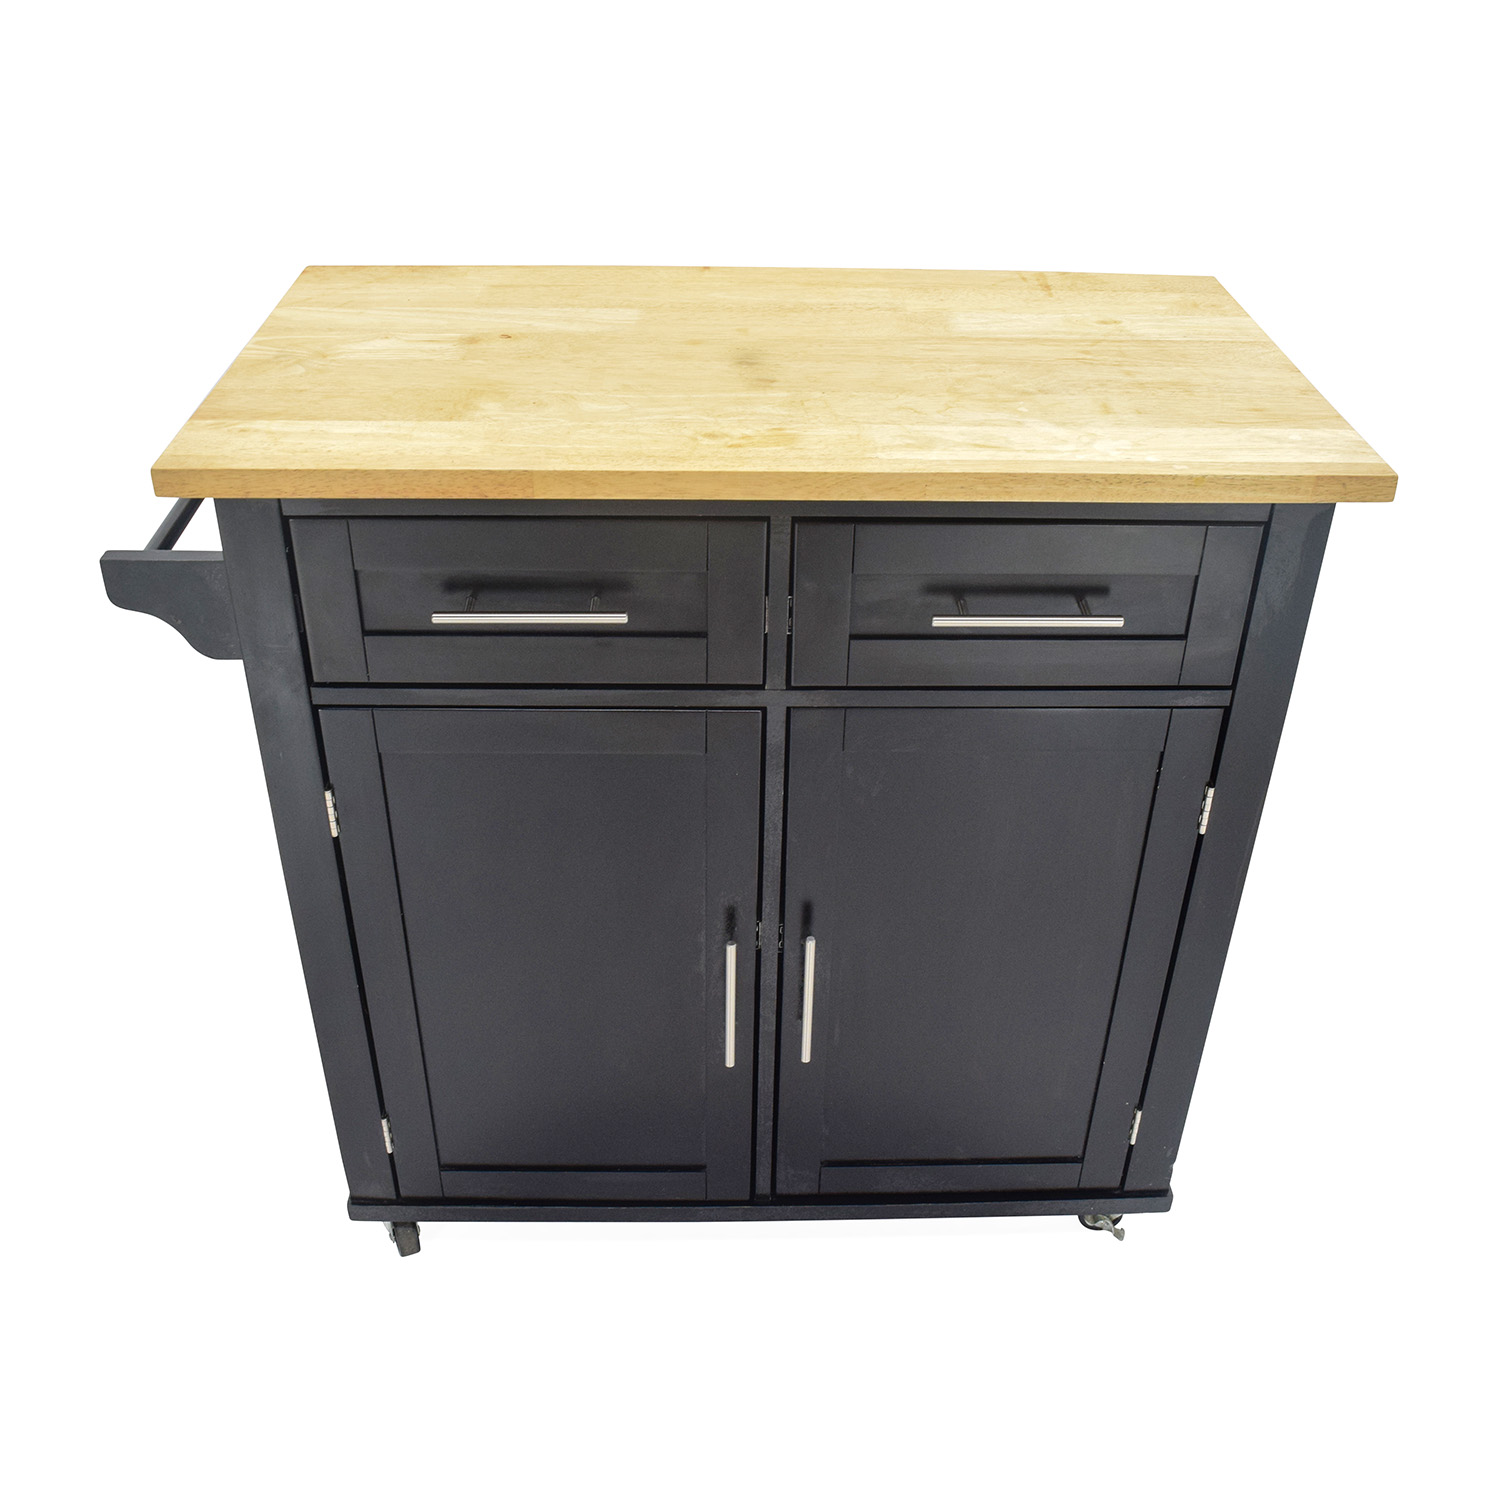 54% OFF - Crate & Barrel Crate and Barrel Kitchen Island / Tables